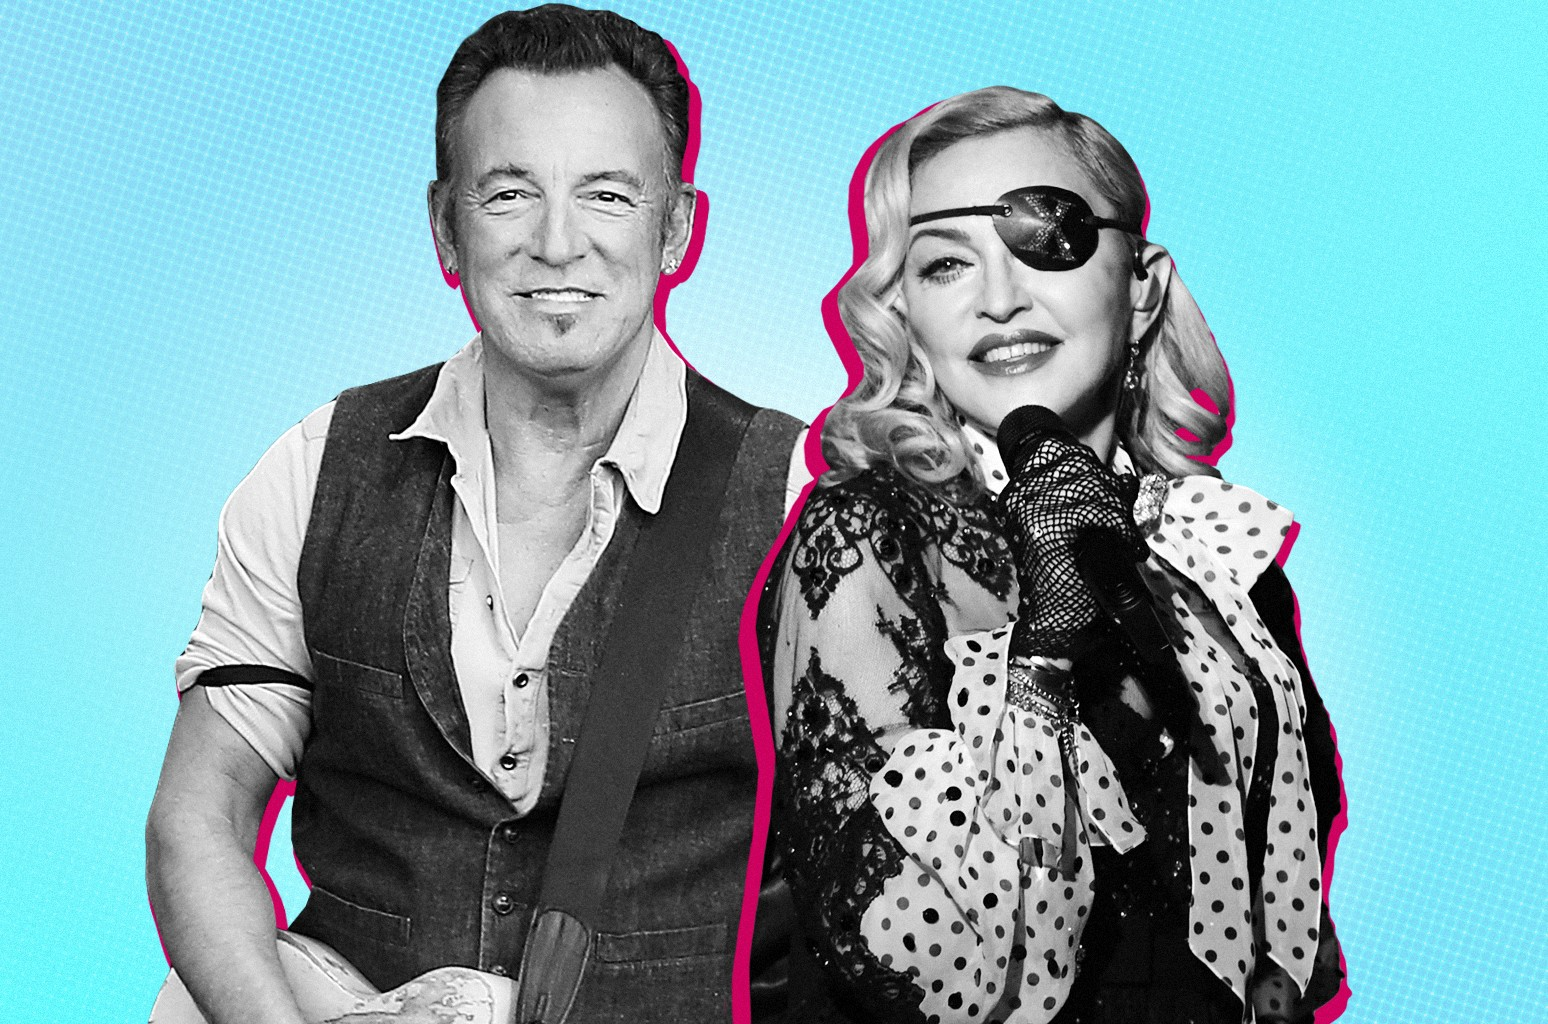 Bruce Springsteen and Madonna